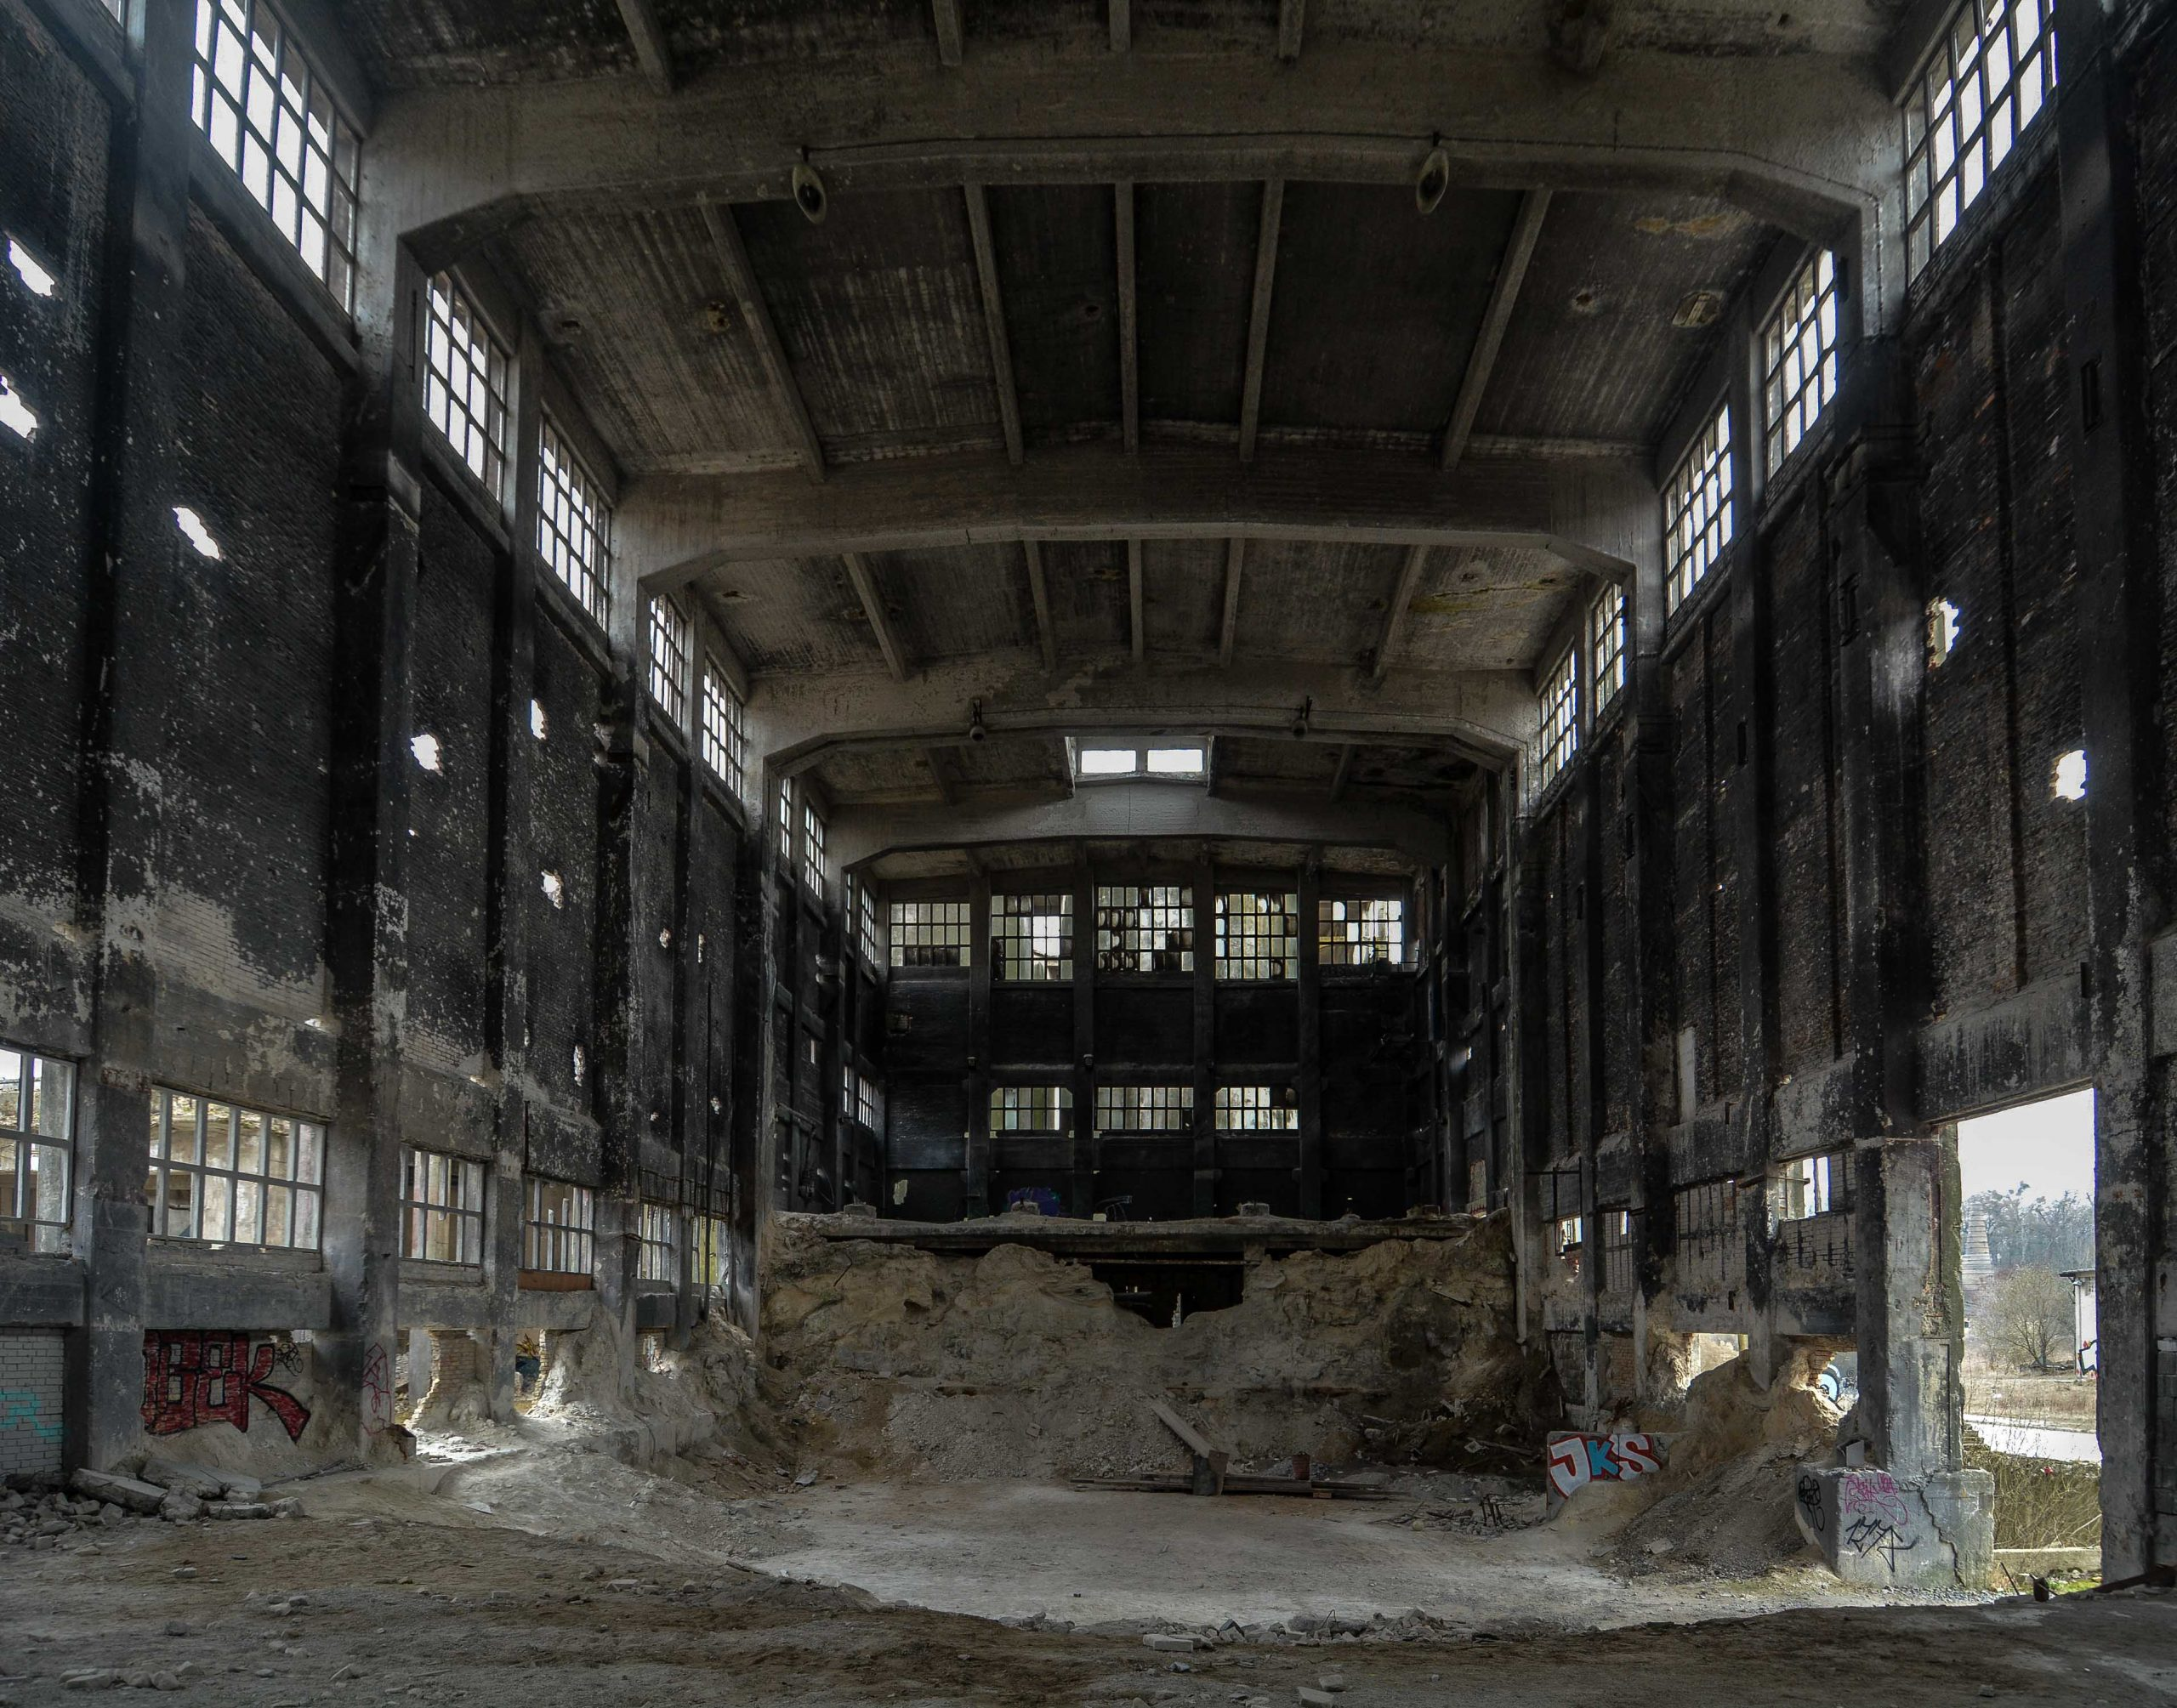 large factory hall back view hemiewerk ruedersdorf chemical factory rudersdorf abandoned urbex urban exploring berlin lost places